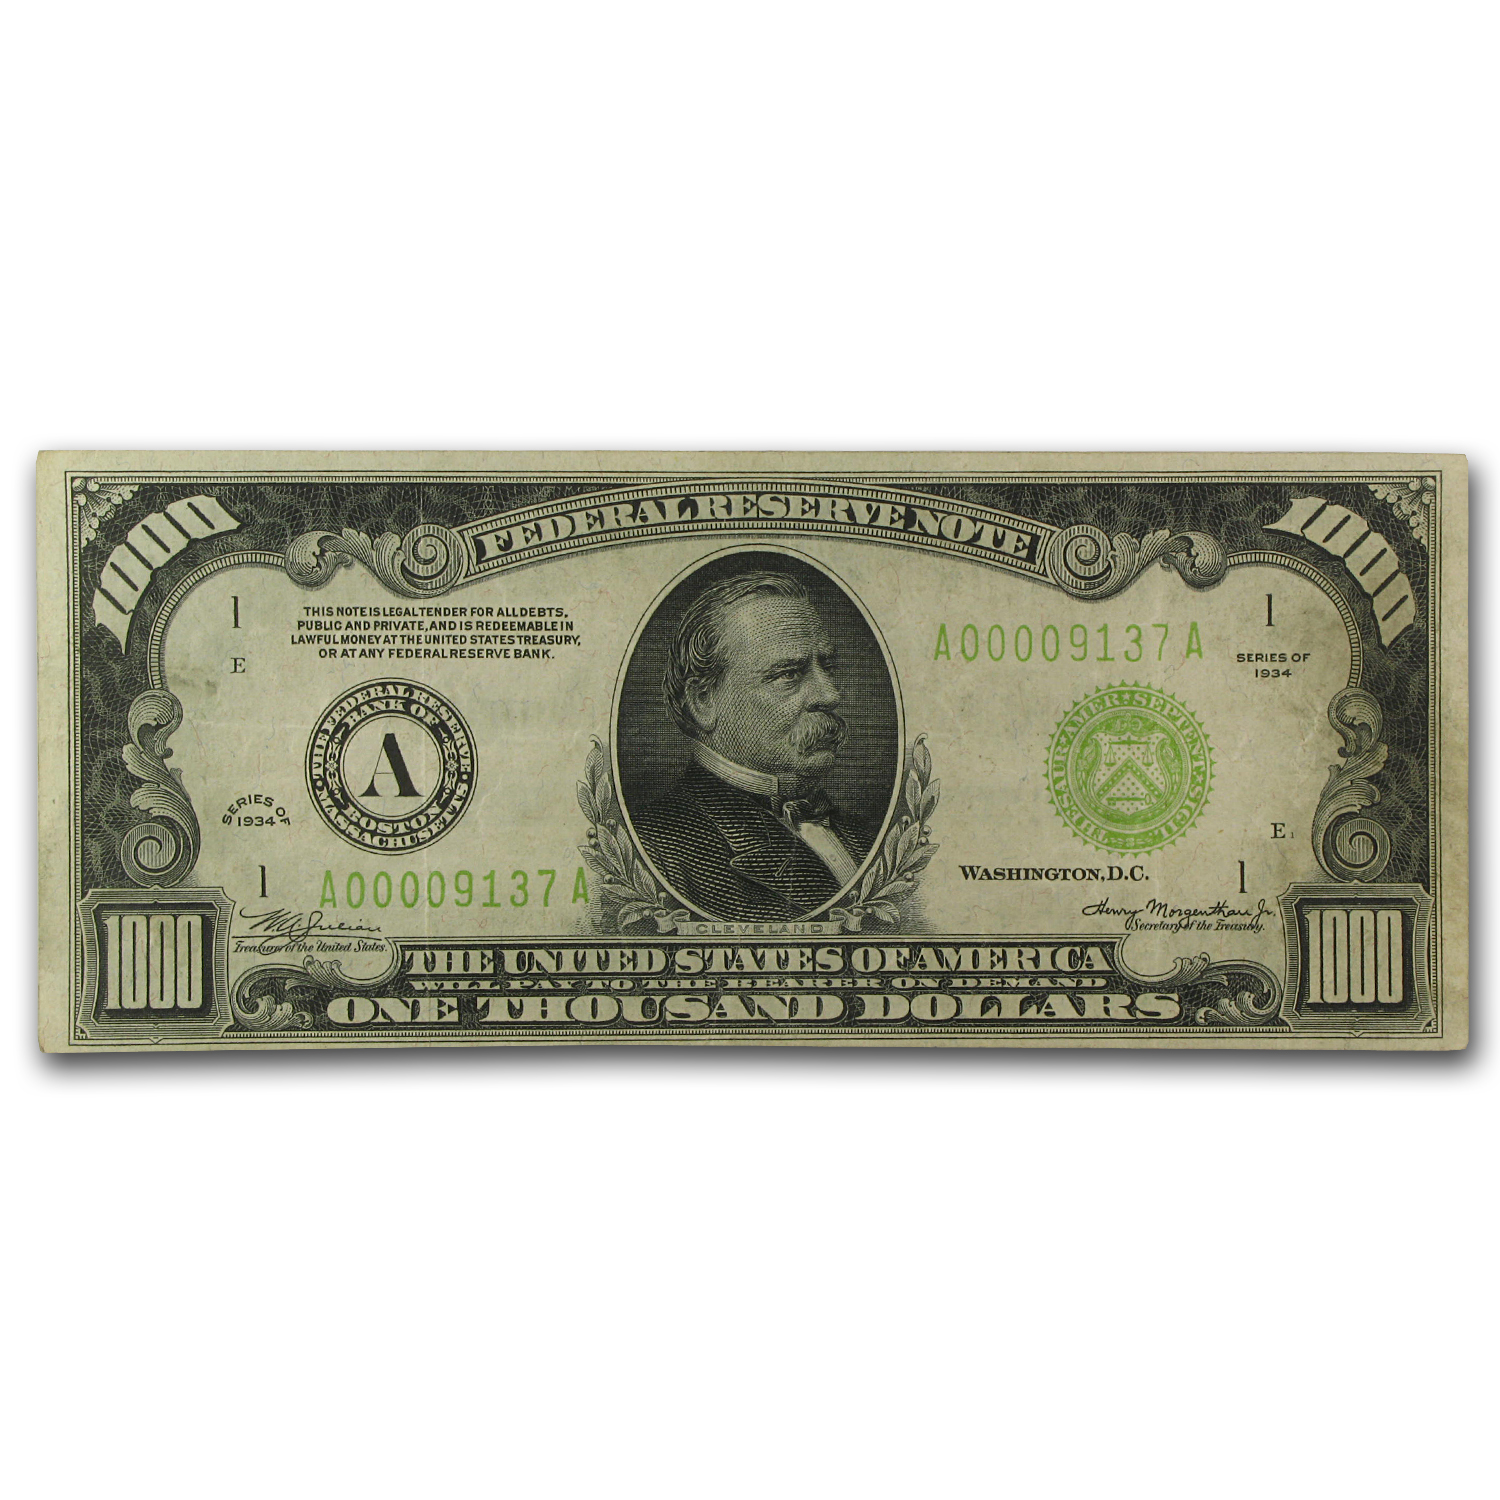 1934 (A-Boston) $1,000 FRN VF (LGS)